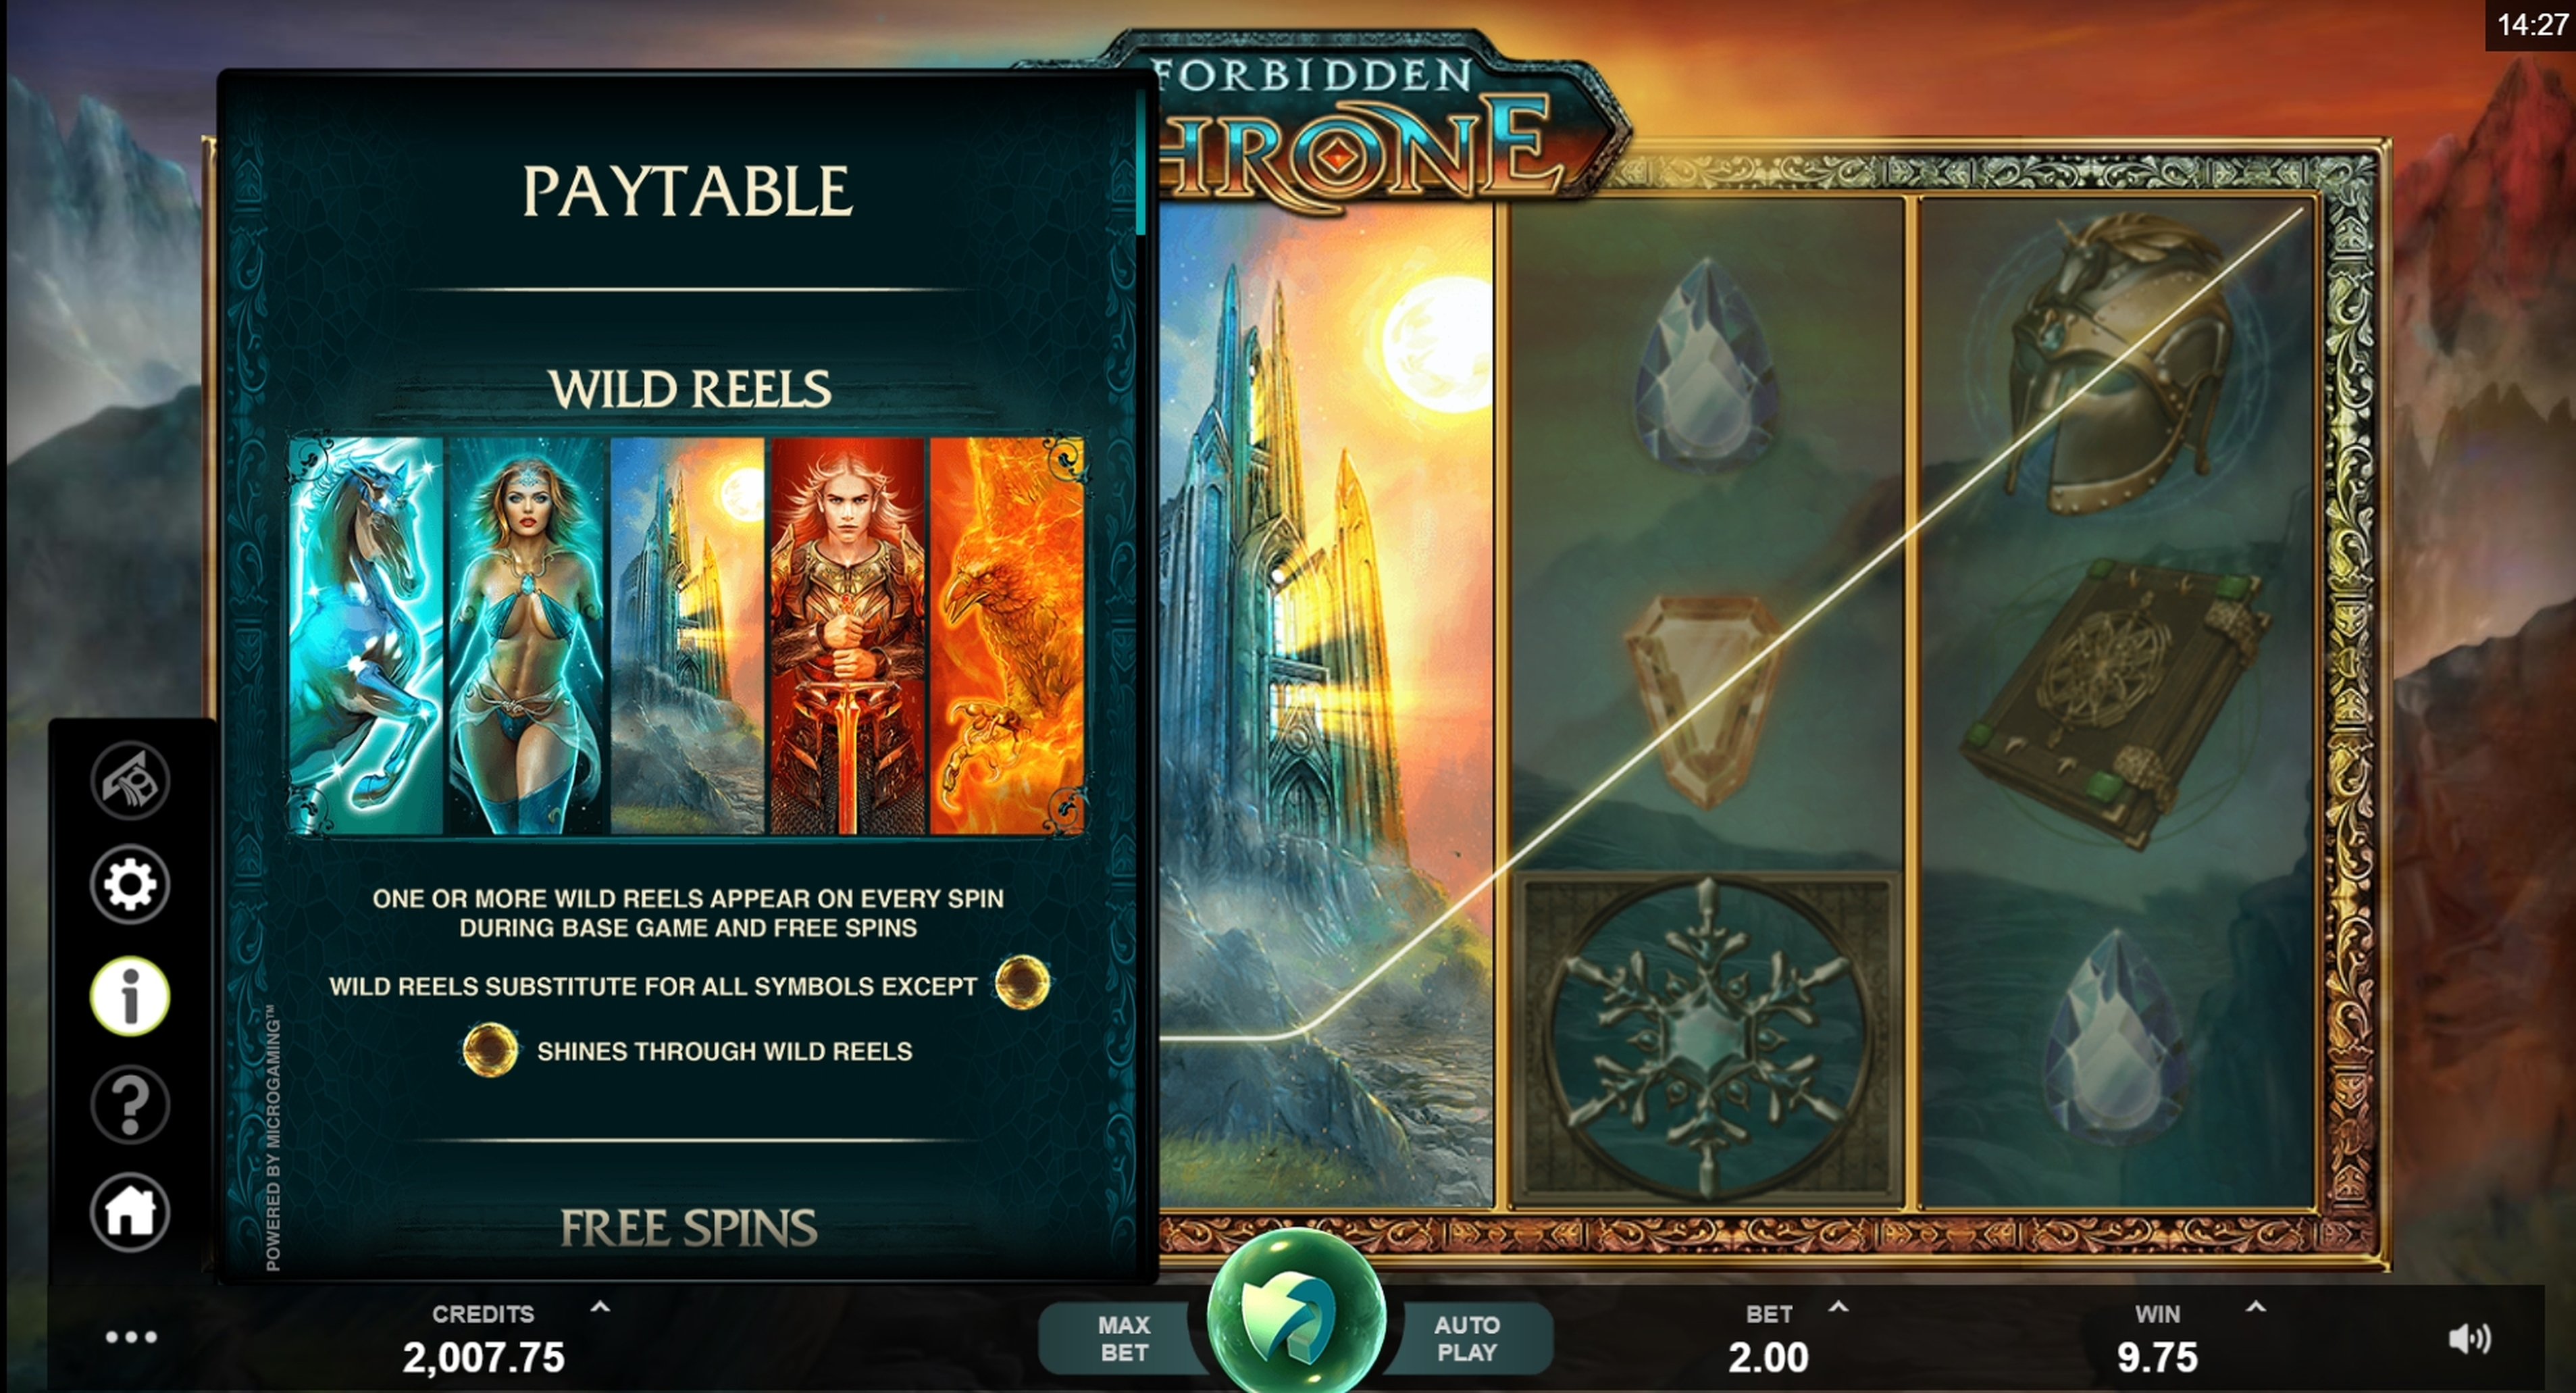 Info of Forbidden Throne Slot Game by MahiGaming